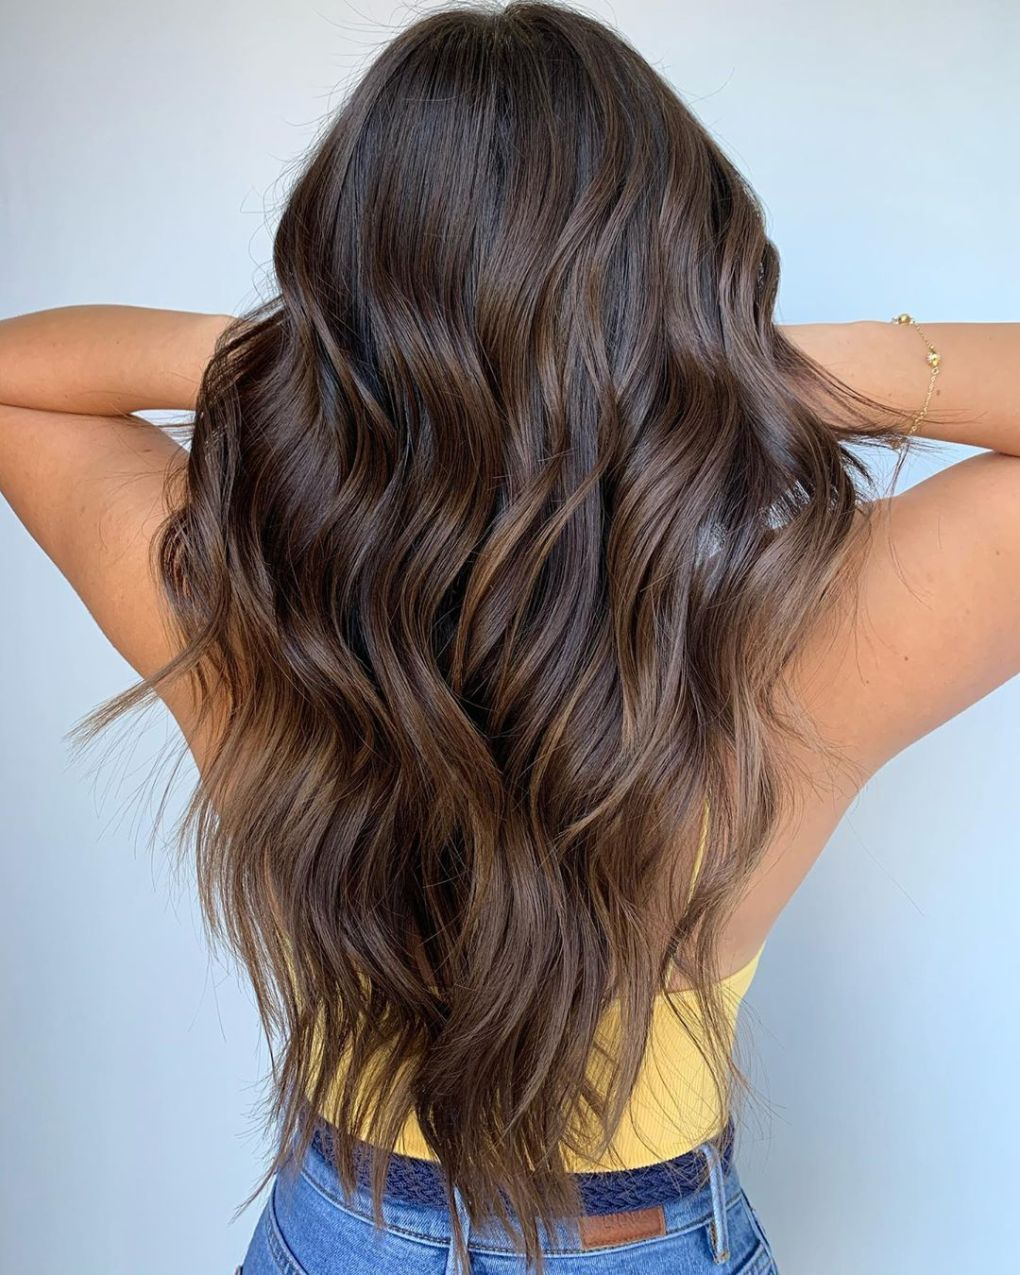 50 Trendy Brown Hair Colors and Brunette Hairstyles for 2020